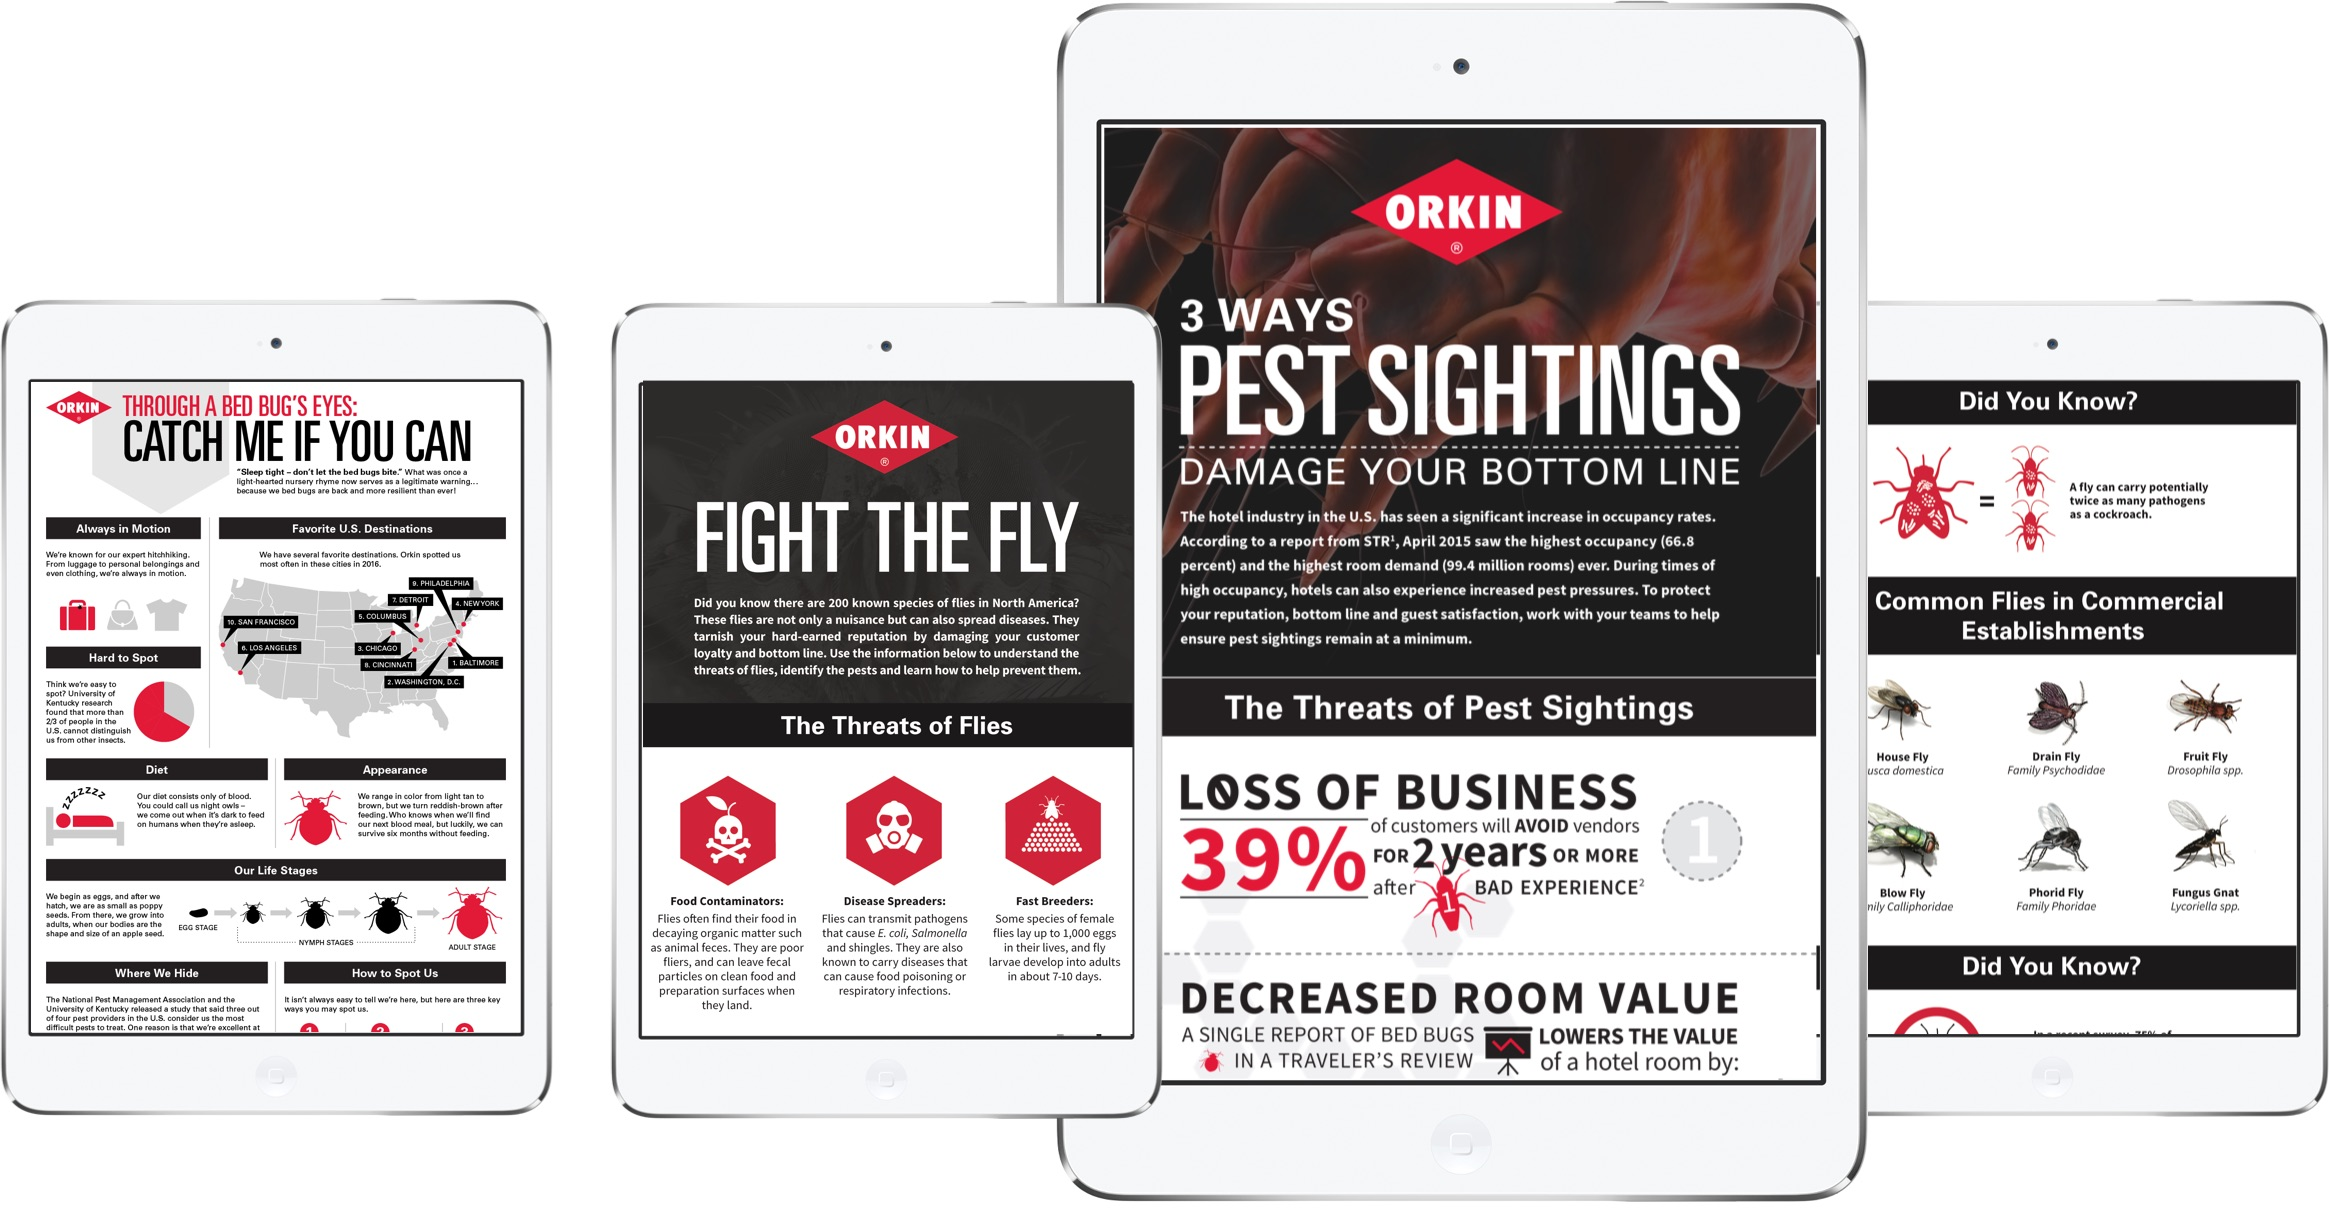 Jackson Spalding - B2B Marketing, Orkin, Digital